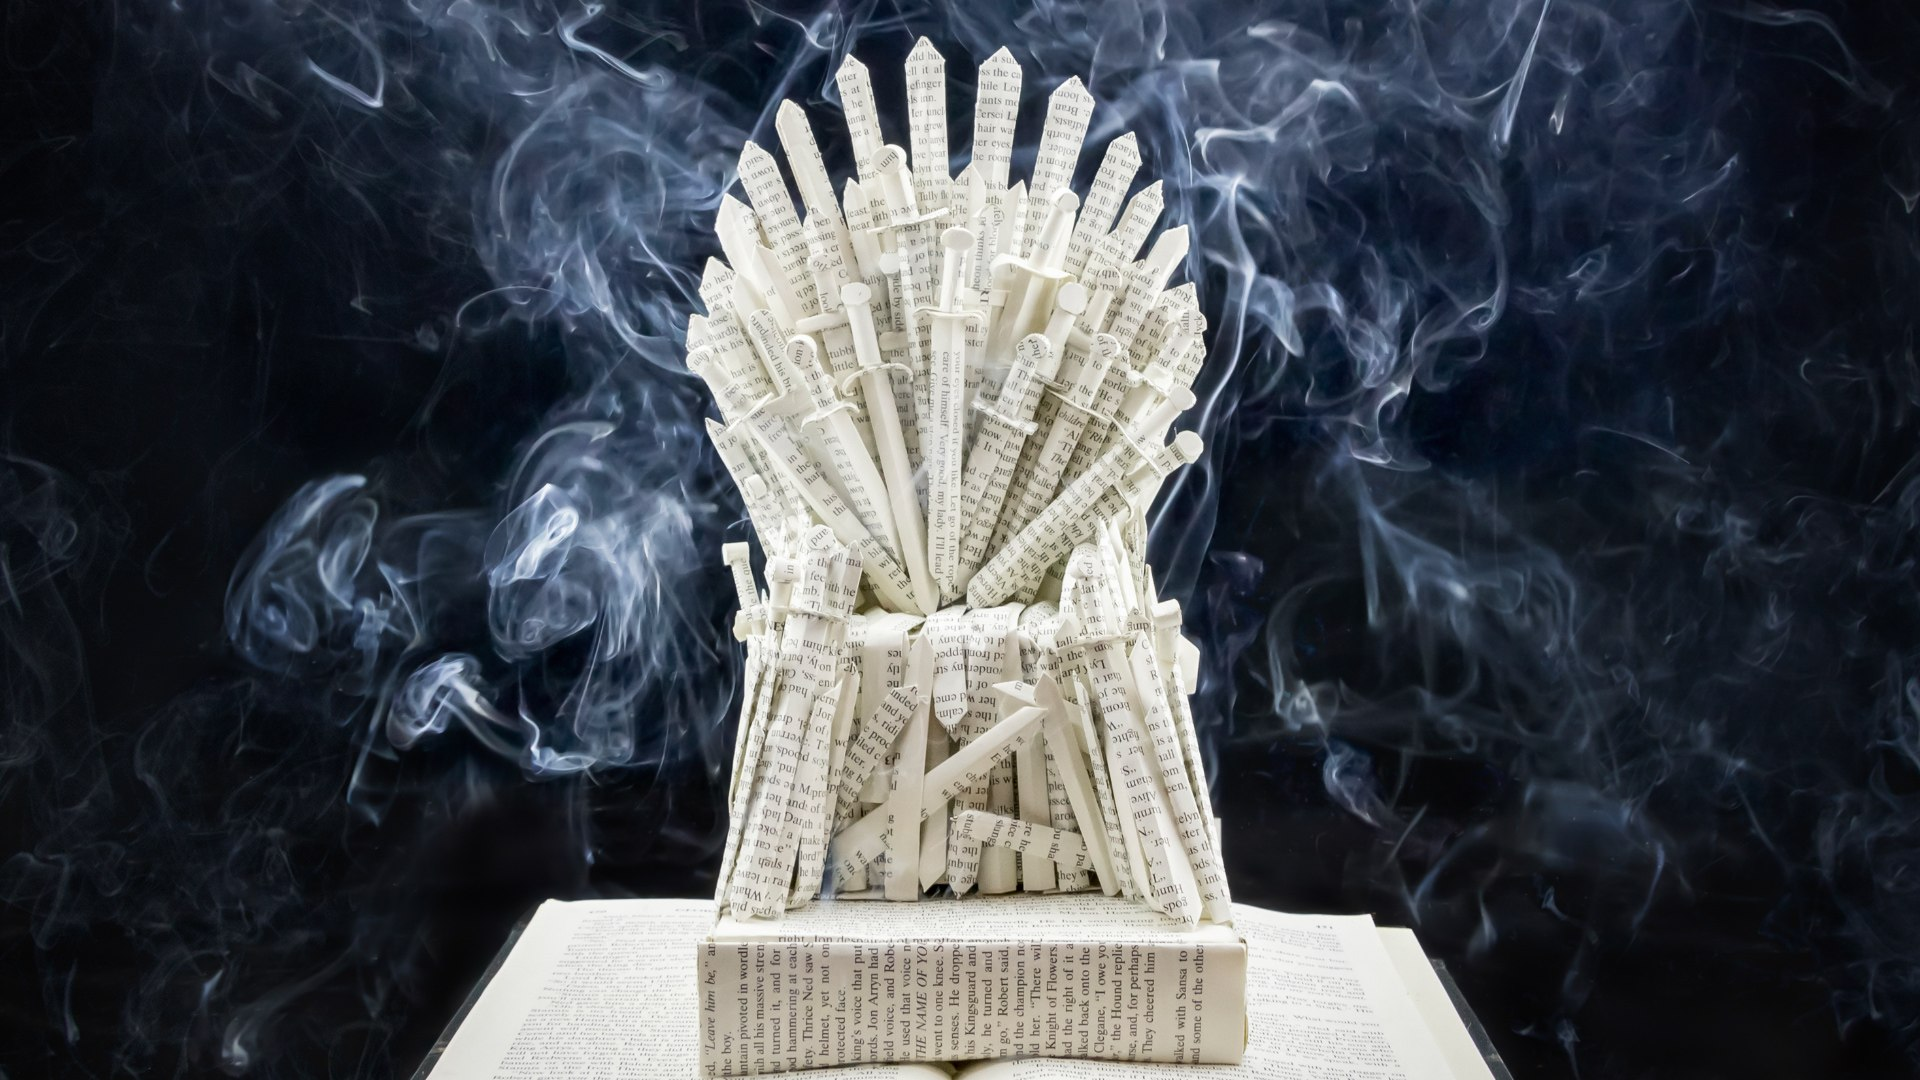 Artist creates 'Game Of Thrones' scenes using books